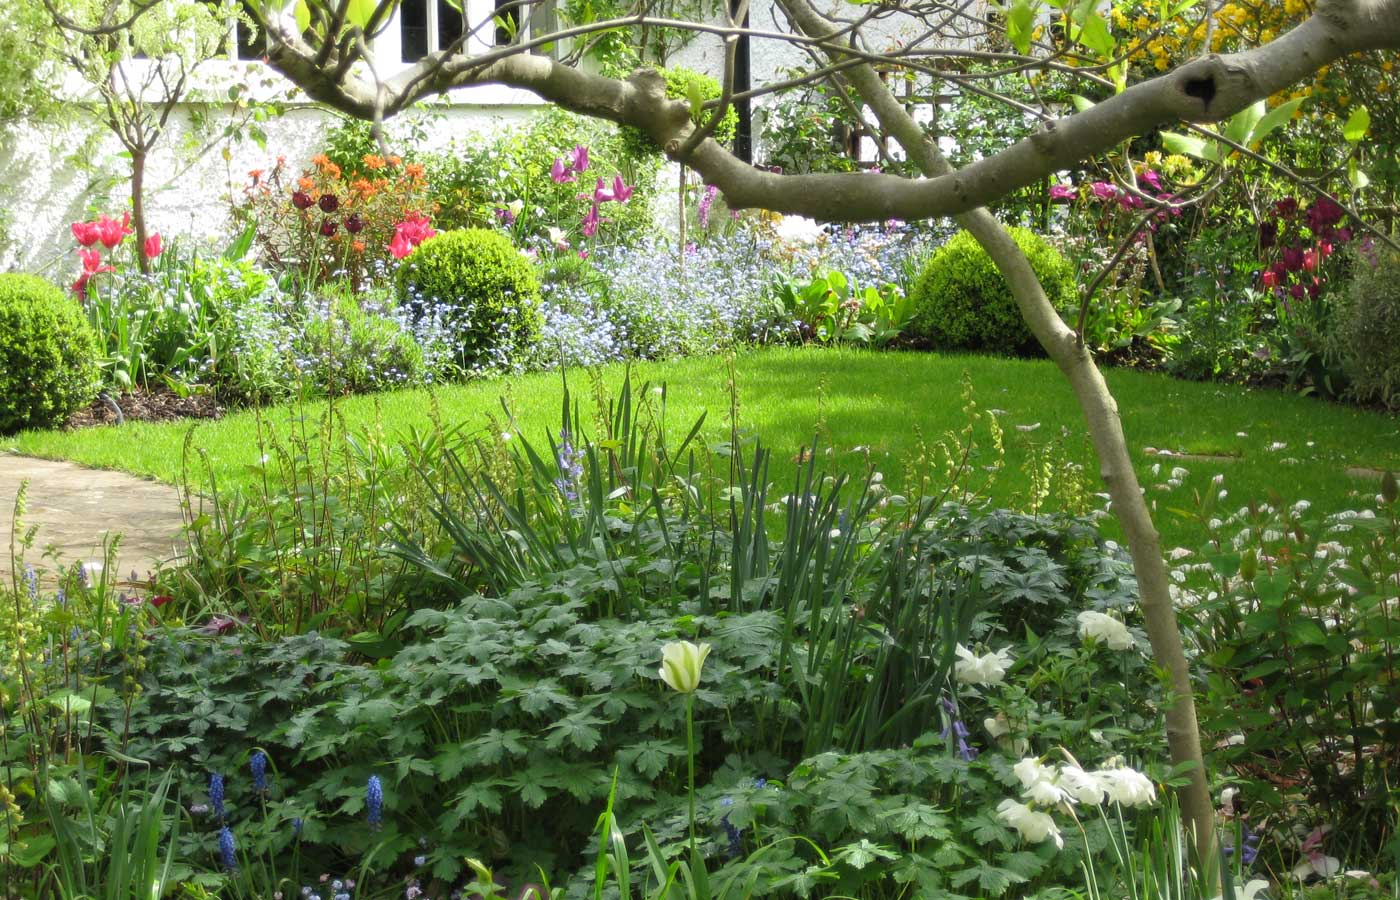 Diana milner garden design beautiful garden designs for Beautiful garden ideas pictures